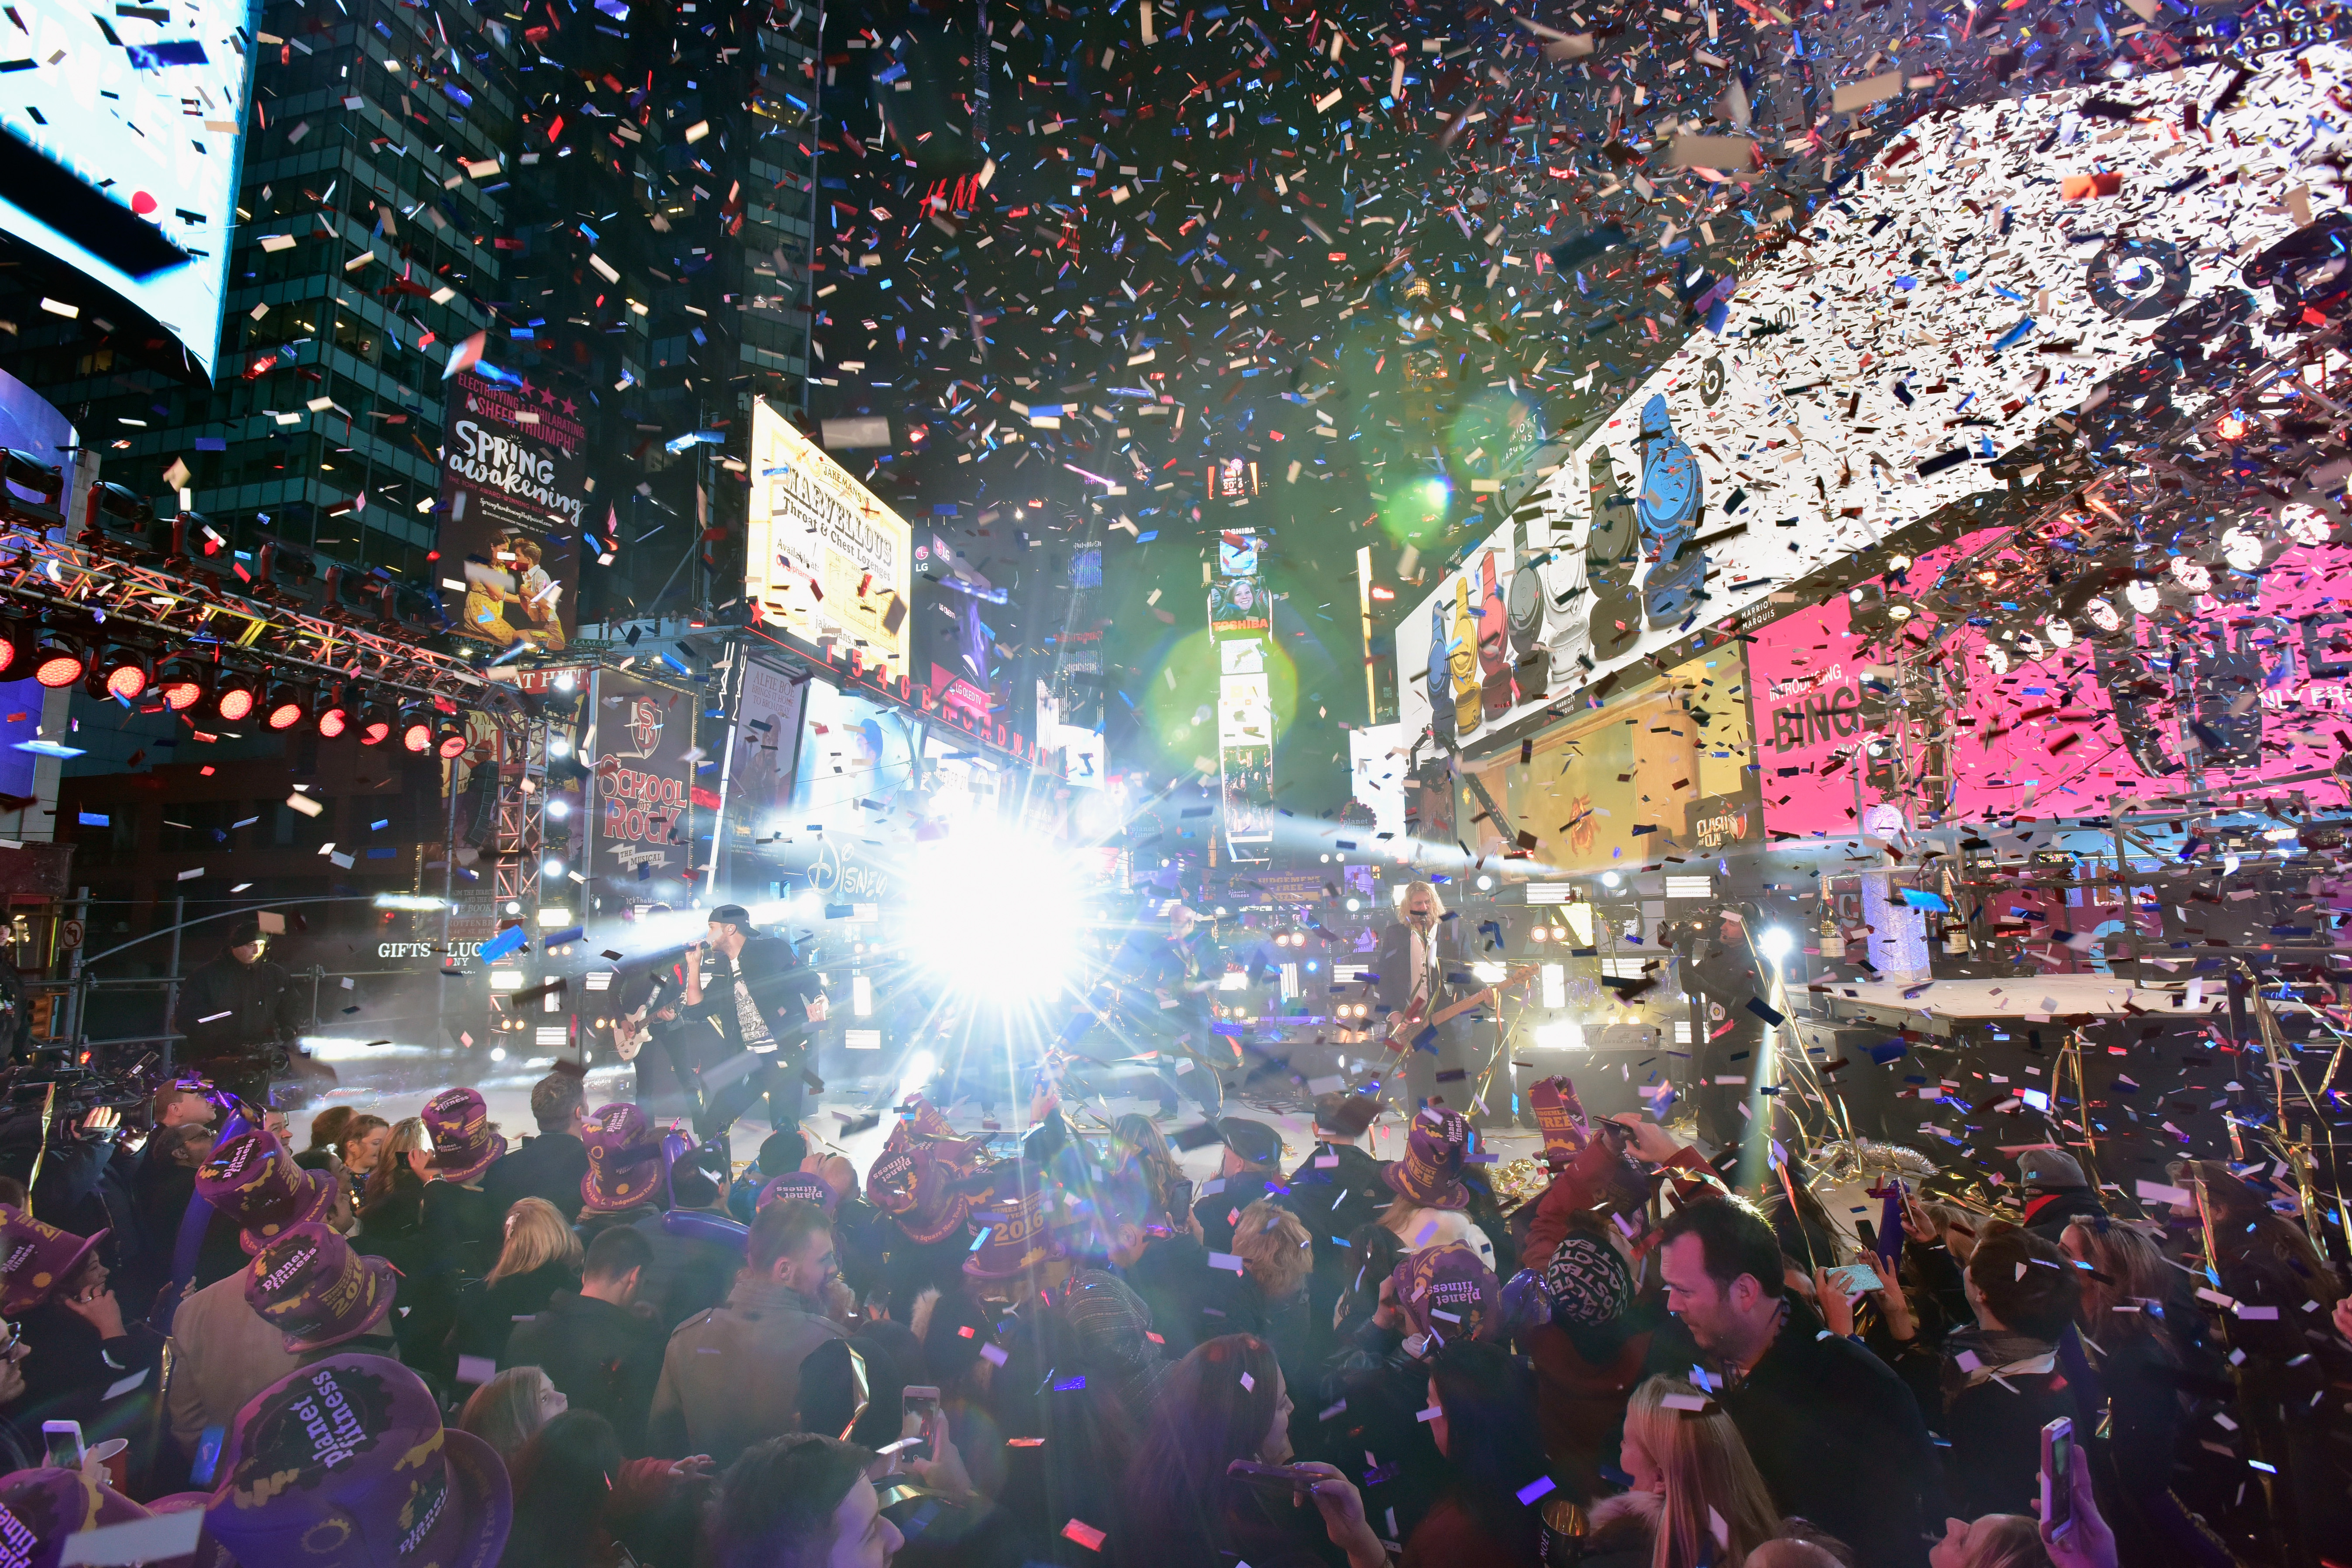 NEW YORK, NY - DECEMBER 31:  Luke Bryan performs on stage during New Year's Eve celebrations at Times Square on December 31, 2015 in New York City.  (Photo by Eugene Gologursky/Getty Images for TOSHIBA CORPORATION)